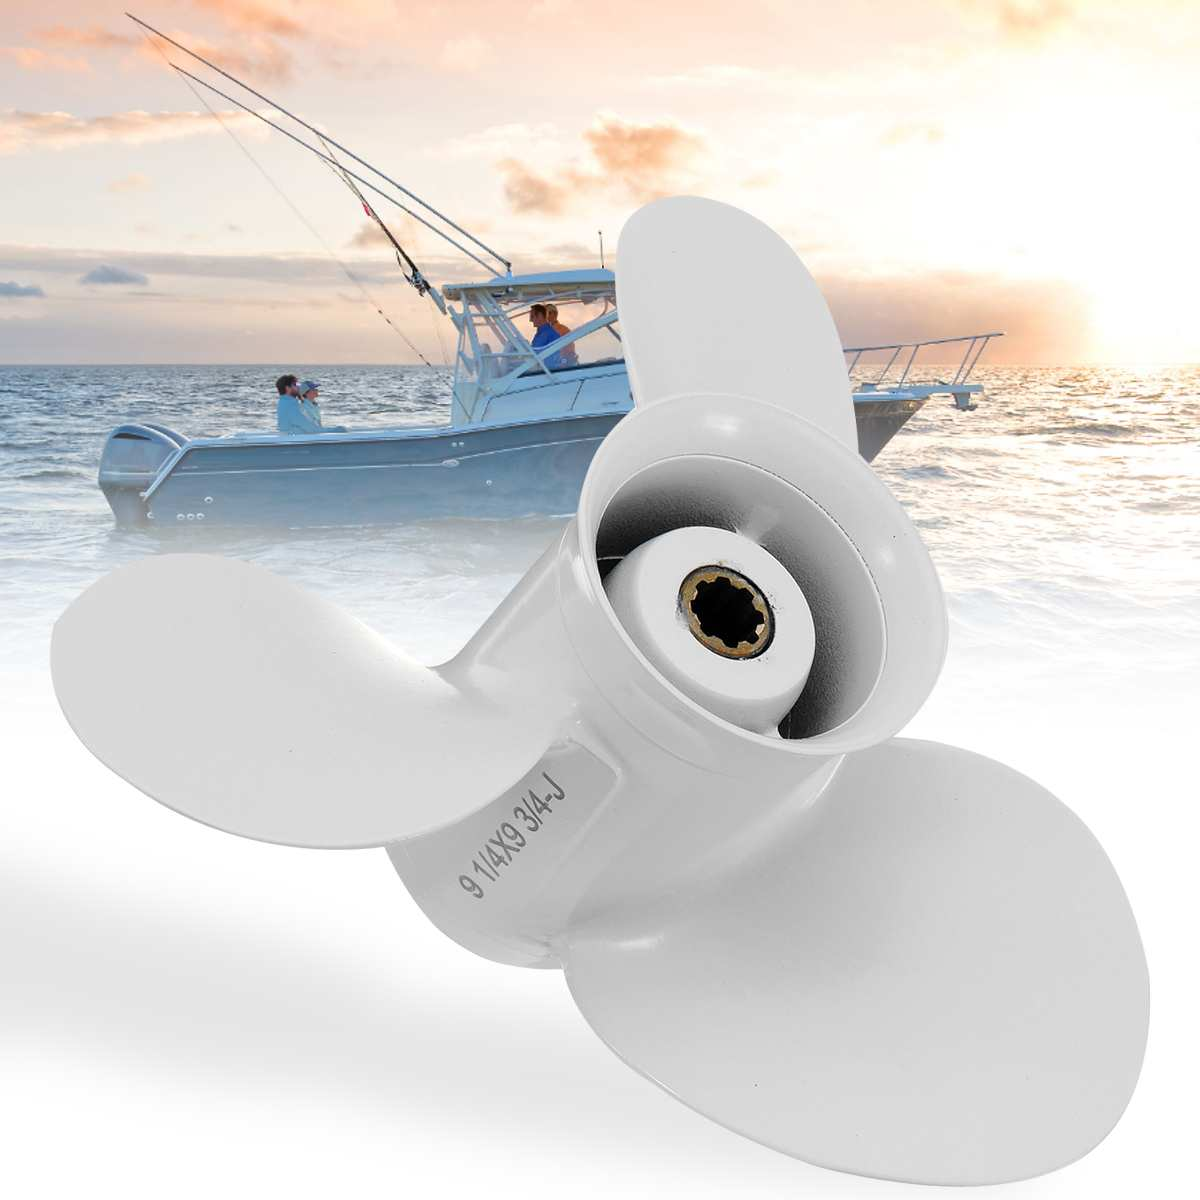 683-45952-00-el 9 1/4 X 9 3/4 Boat Outboard Propeller For Yamaha 9.9-15hp Aluminum Alloy 3 Blades 8 Spline Tooths White To Adopt Advanced Technology Marine Propeller